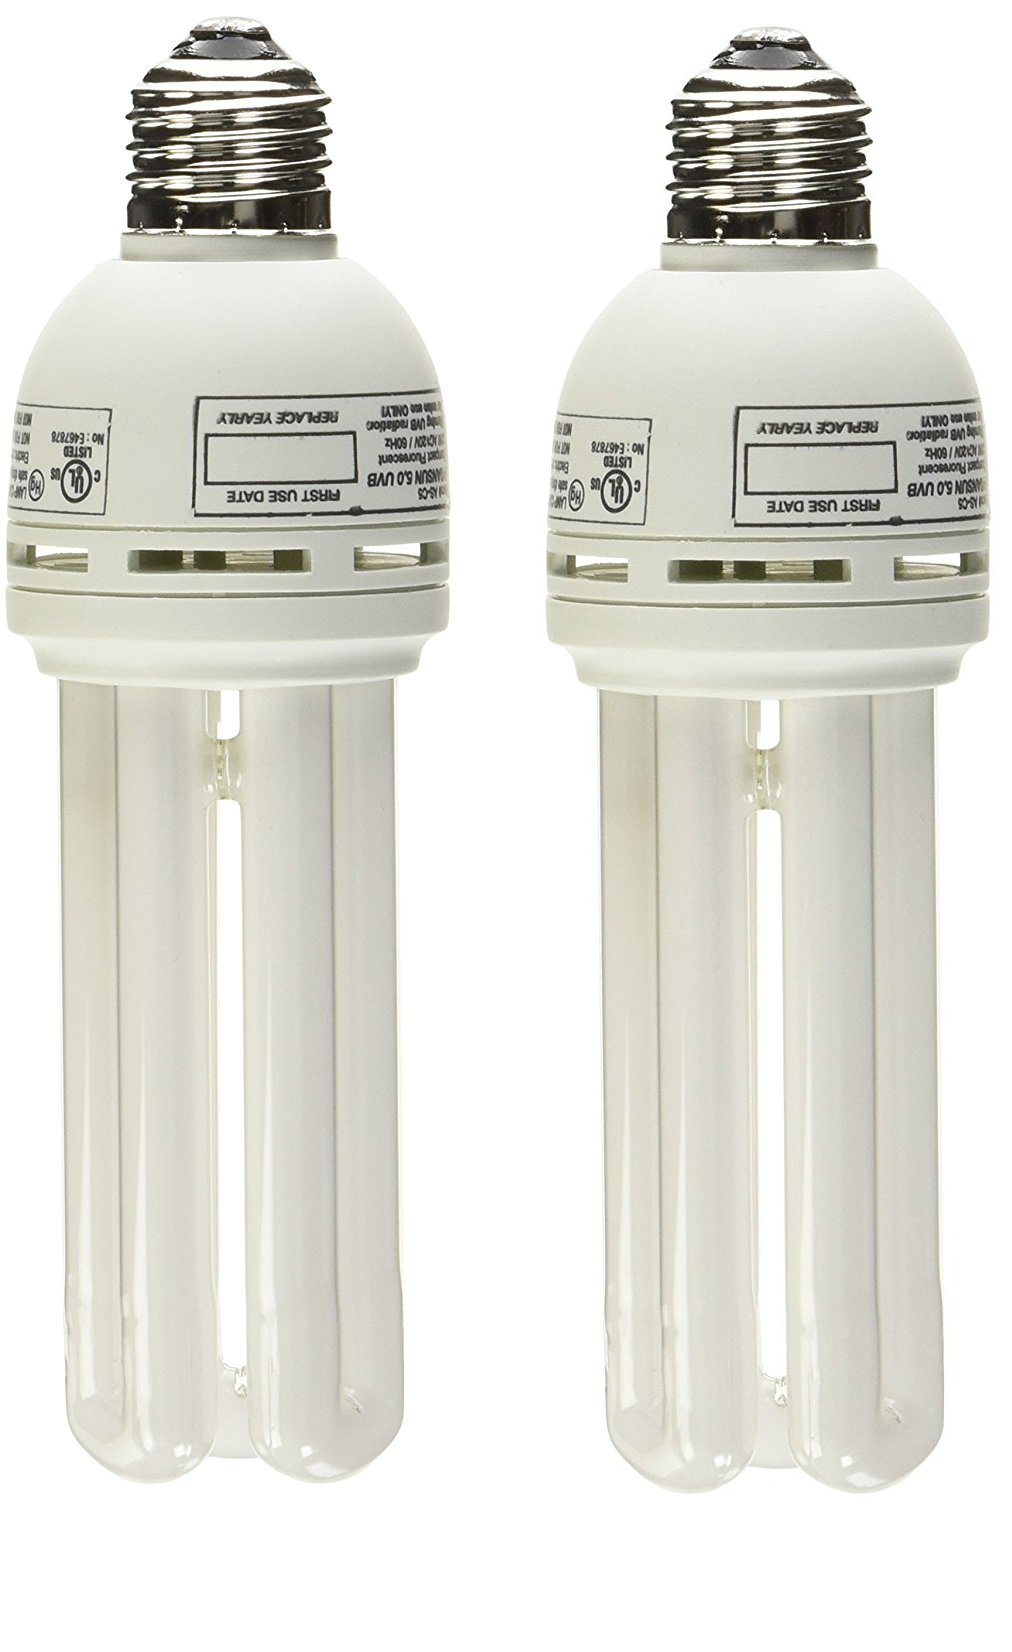 Zoo Med (2 Pack) 24975 Avian Sun 5.0 Uvb Compact Fluorescent Lamp, 26W by Zoo Med